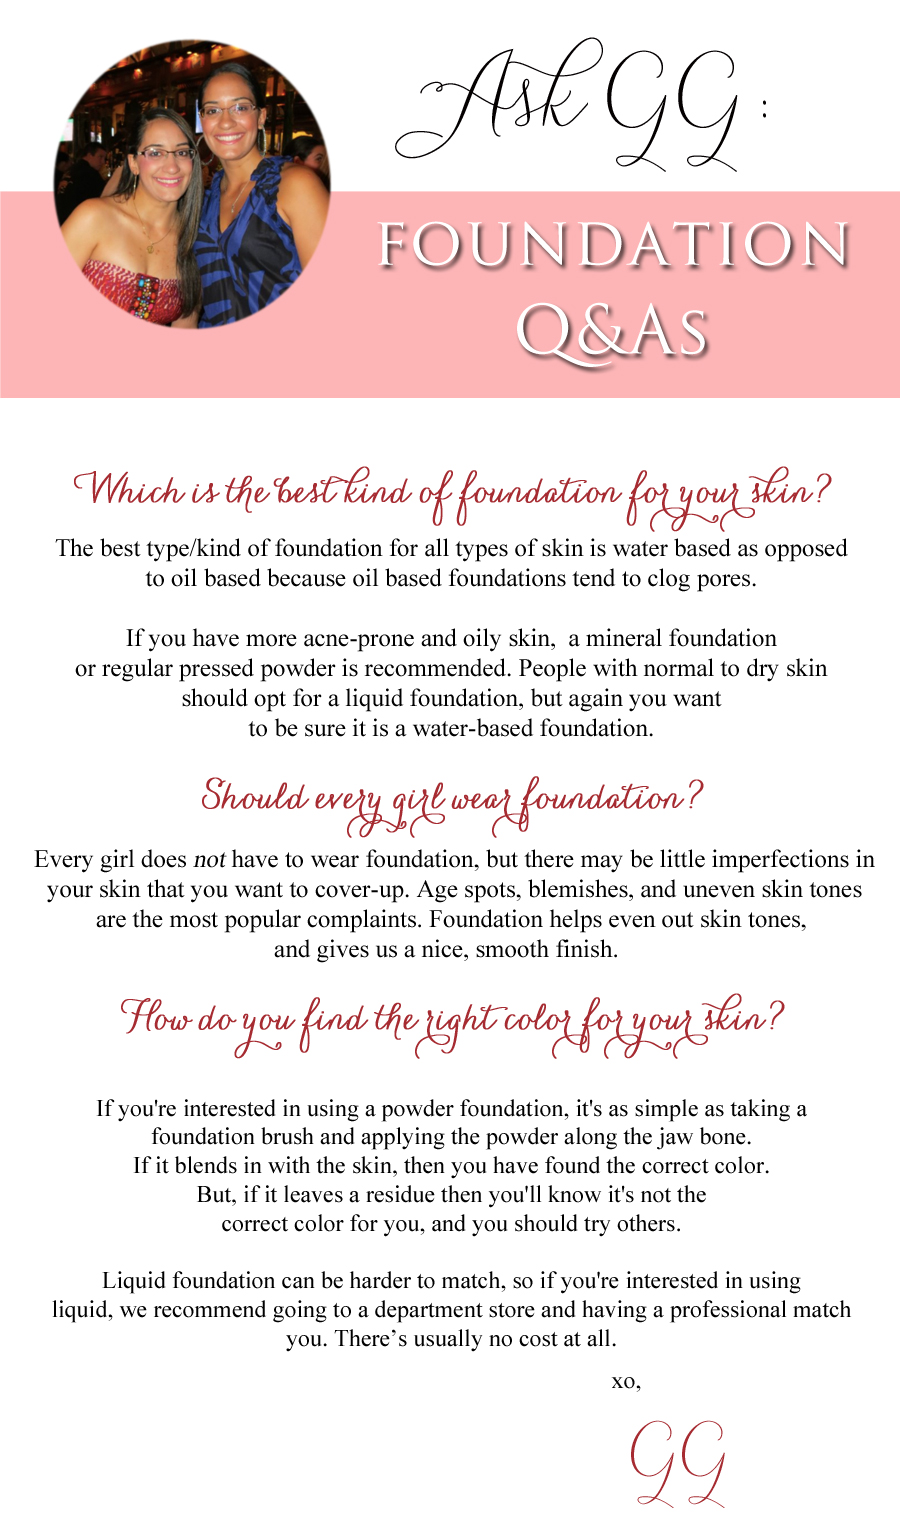 Foundation-Q&A